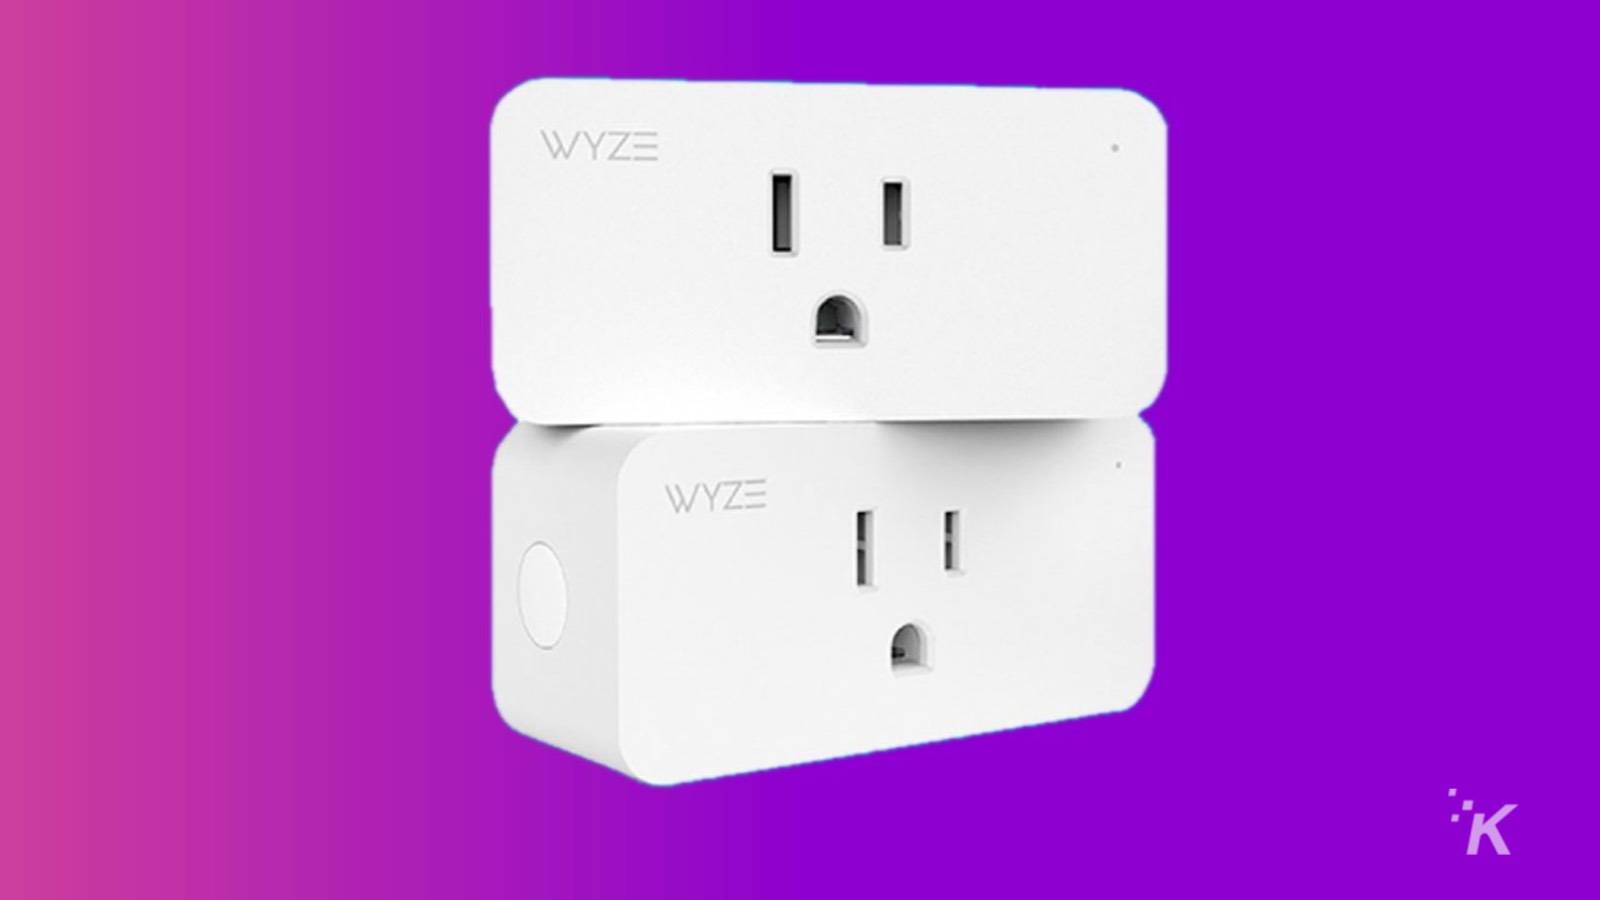 two wyze smart plugs stacked